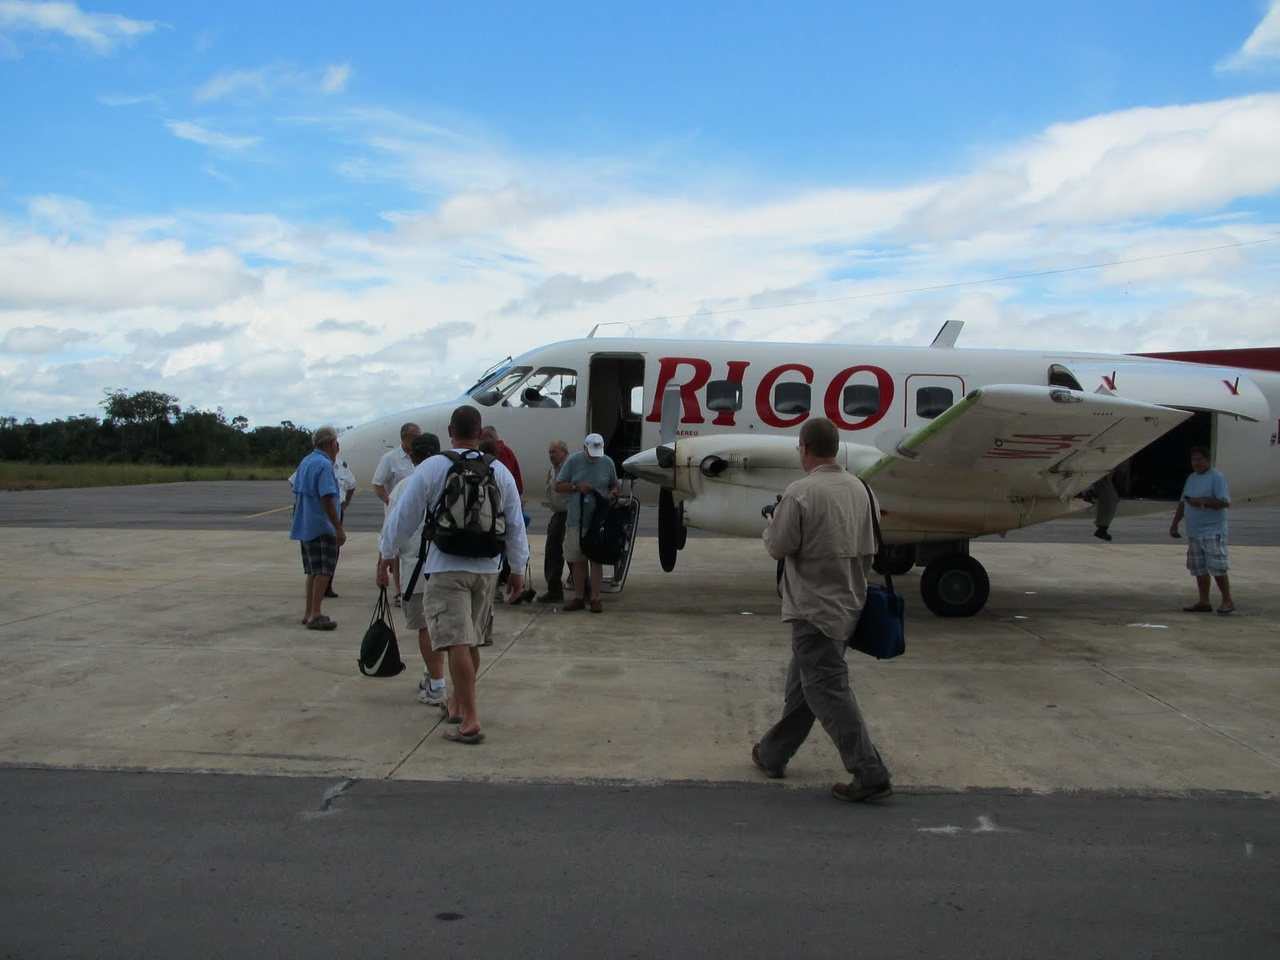 Our transport back to Manaus